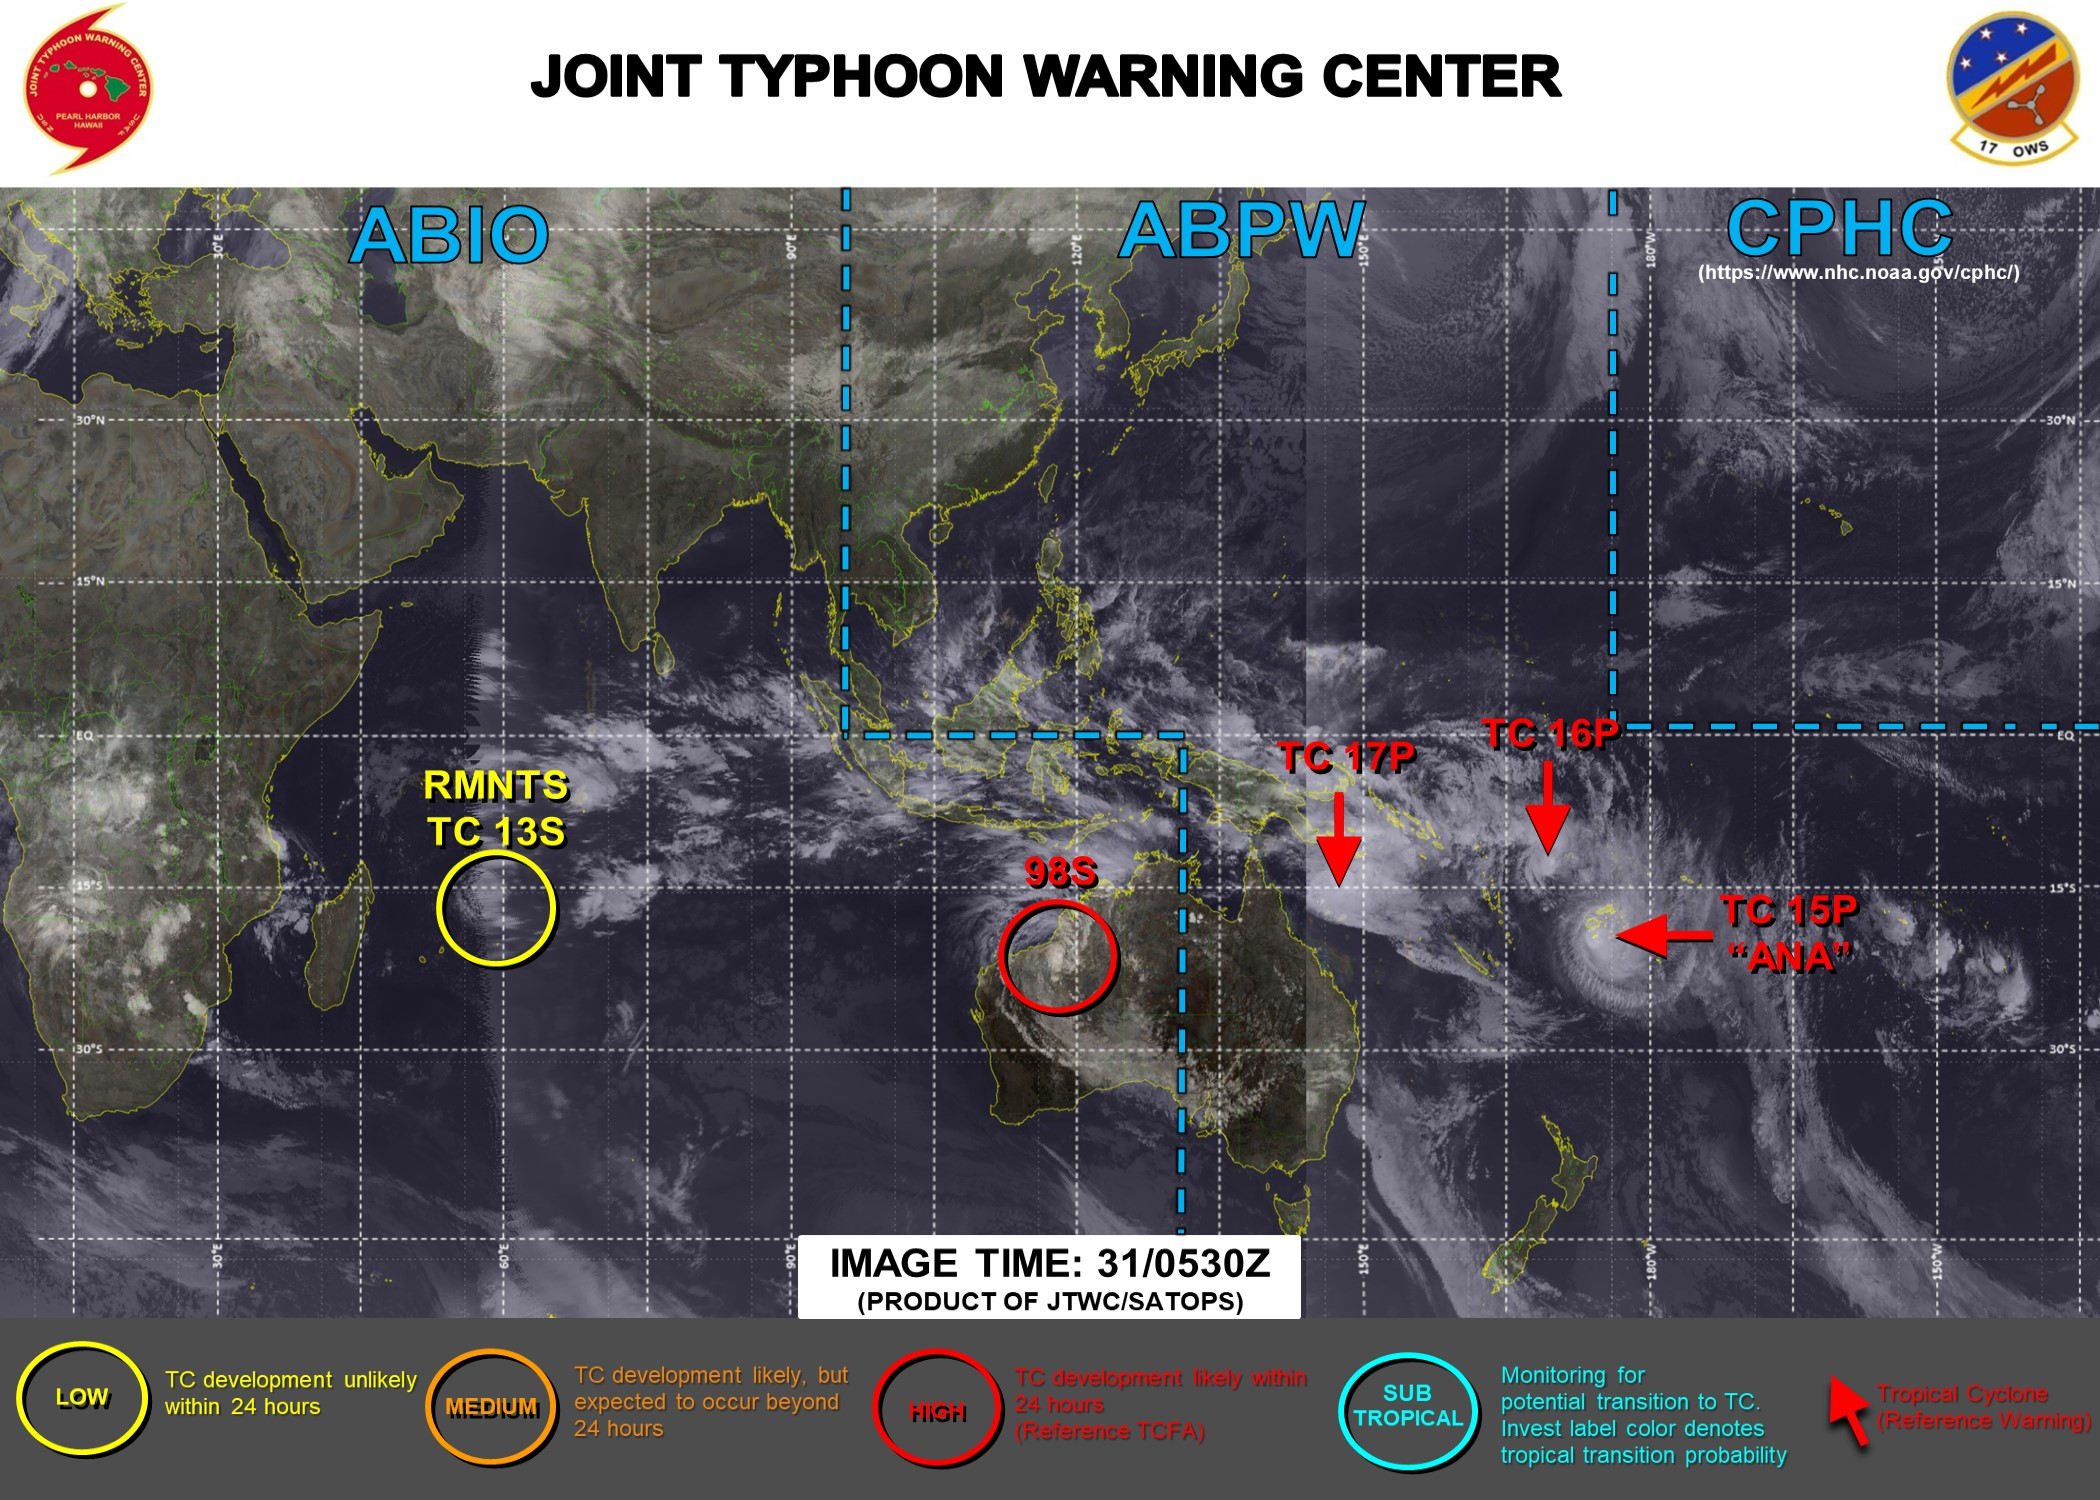 31/06UTC. JTWC HAS BEEN ISSUING 6 HOURLY WARNINGS ON 15P(ANA), 16P AND 17P. 3 HOURLY SATELLITE BULLETINS ARE PROVIDED FOR 15P,16P,17P AND INVEST 98S.